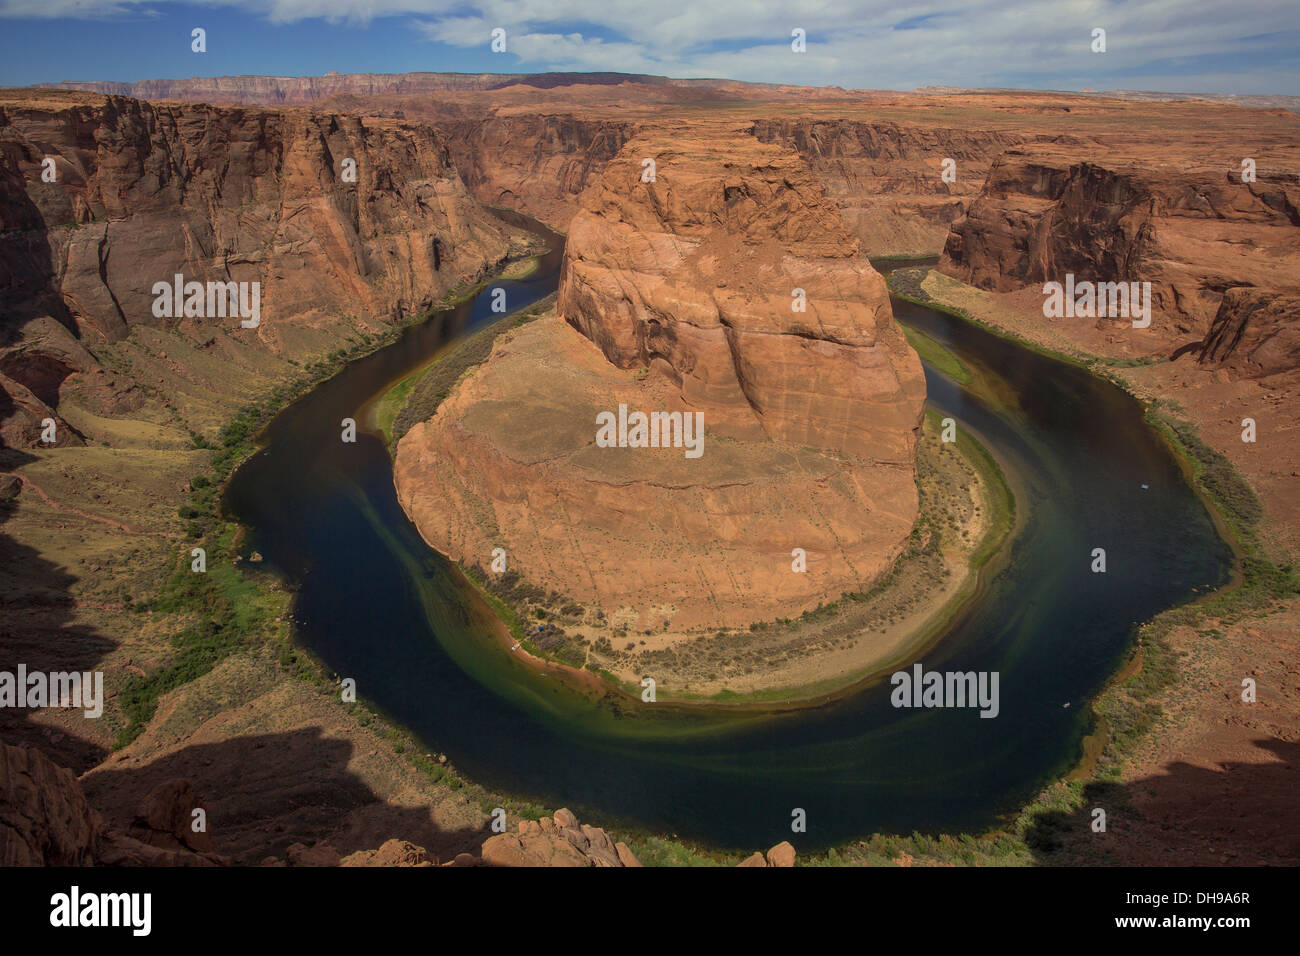 horseshoe bend, Arizona - Stock Image